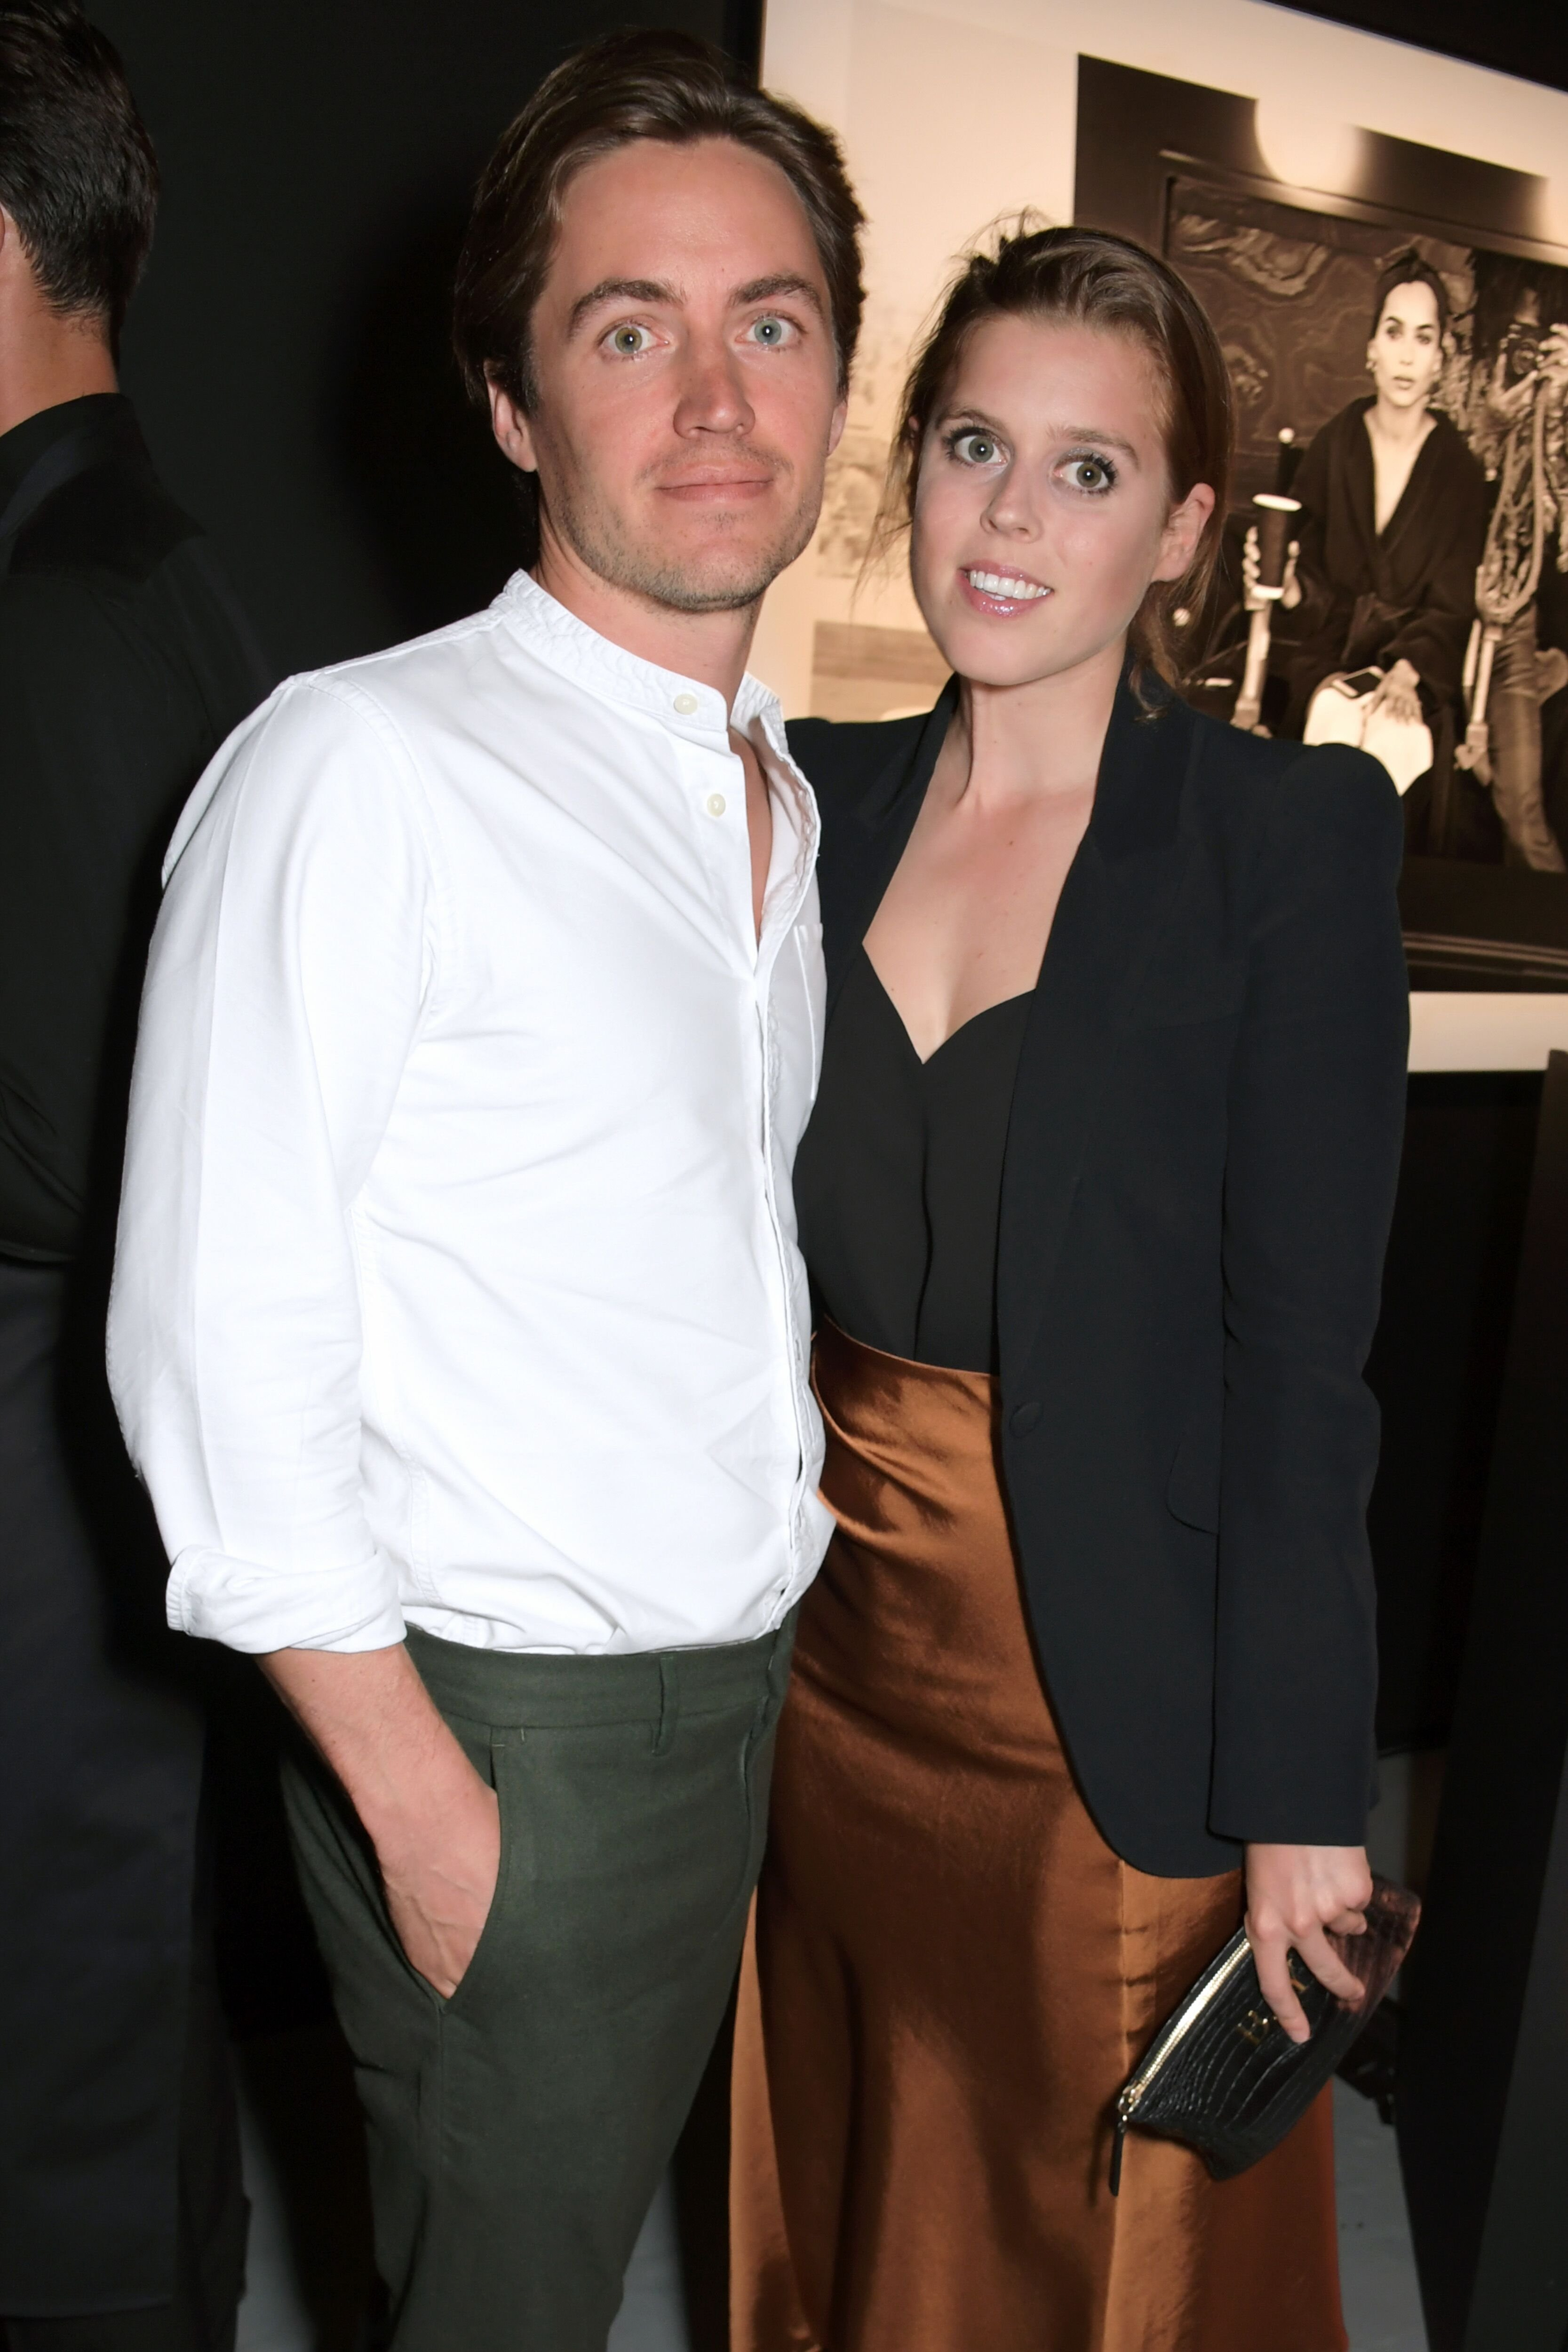 Edoardo Mapelli Mozzi and Princess Beatrice of York attend the Lenny Kravitz & Dom Perignon 'Assemblage' exhibition, the launch Of Lenny Kravitz' UK Photography Exhibition, on July 10, 2019 in London, England. | Photo: Getty Images